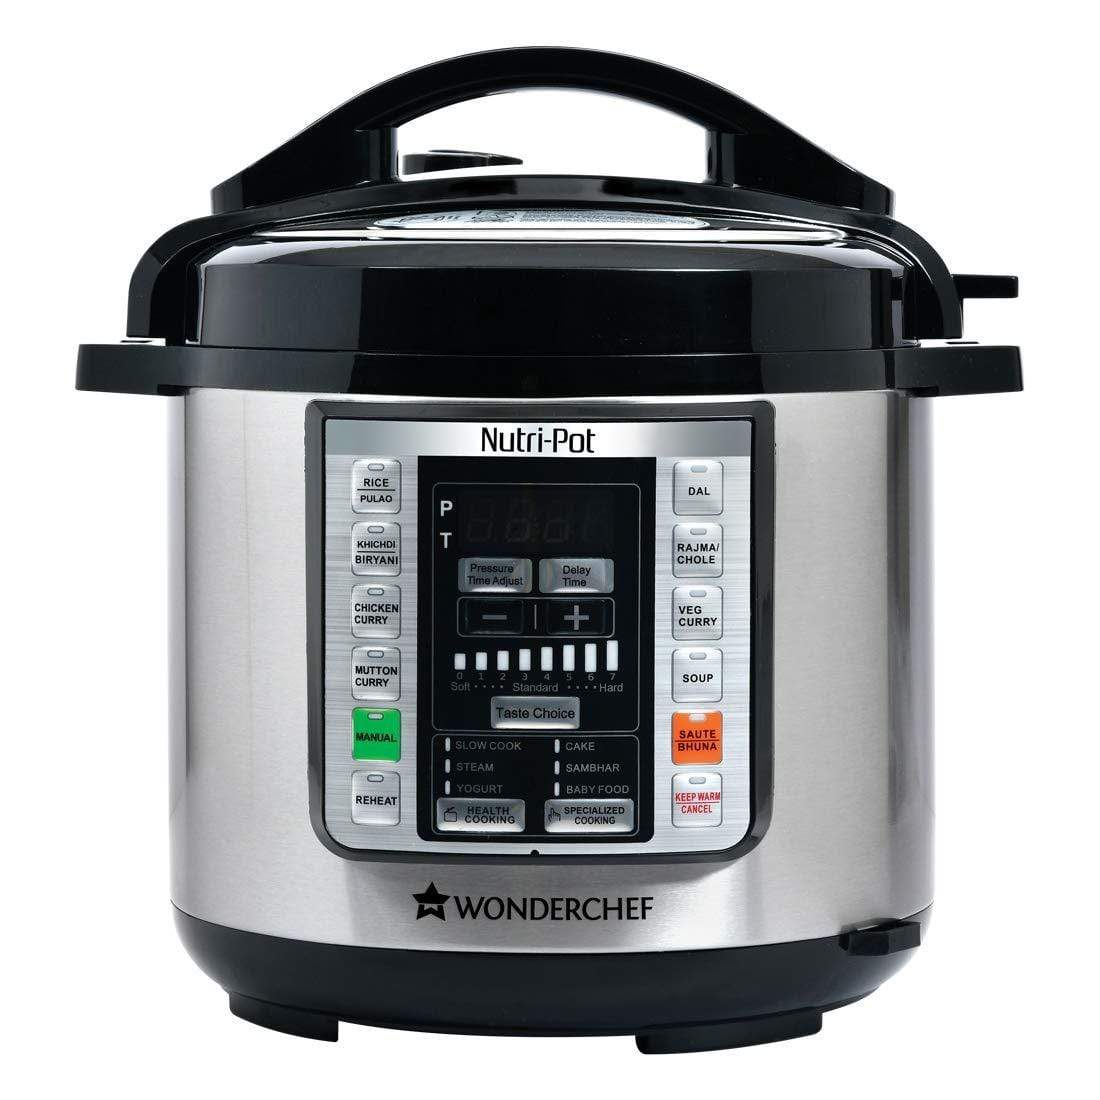 Wonderchef Nutri-Pot 6-Litres 1000 Watts (Black/Silver) - KITCHEN MART